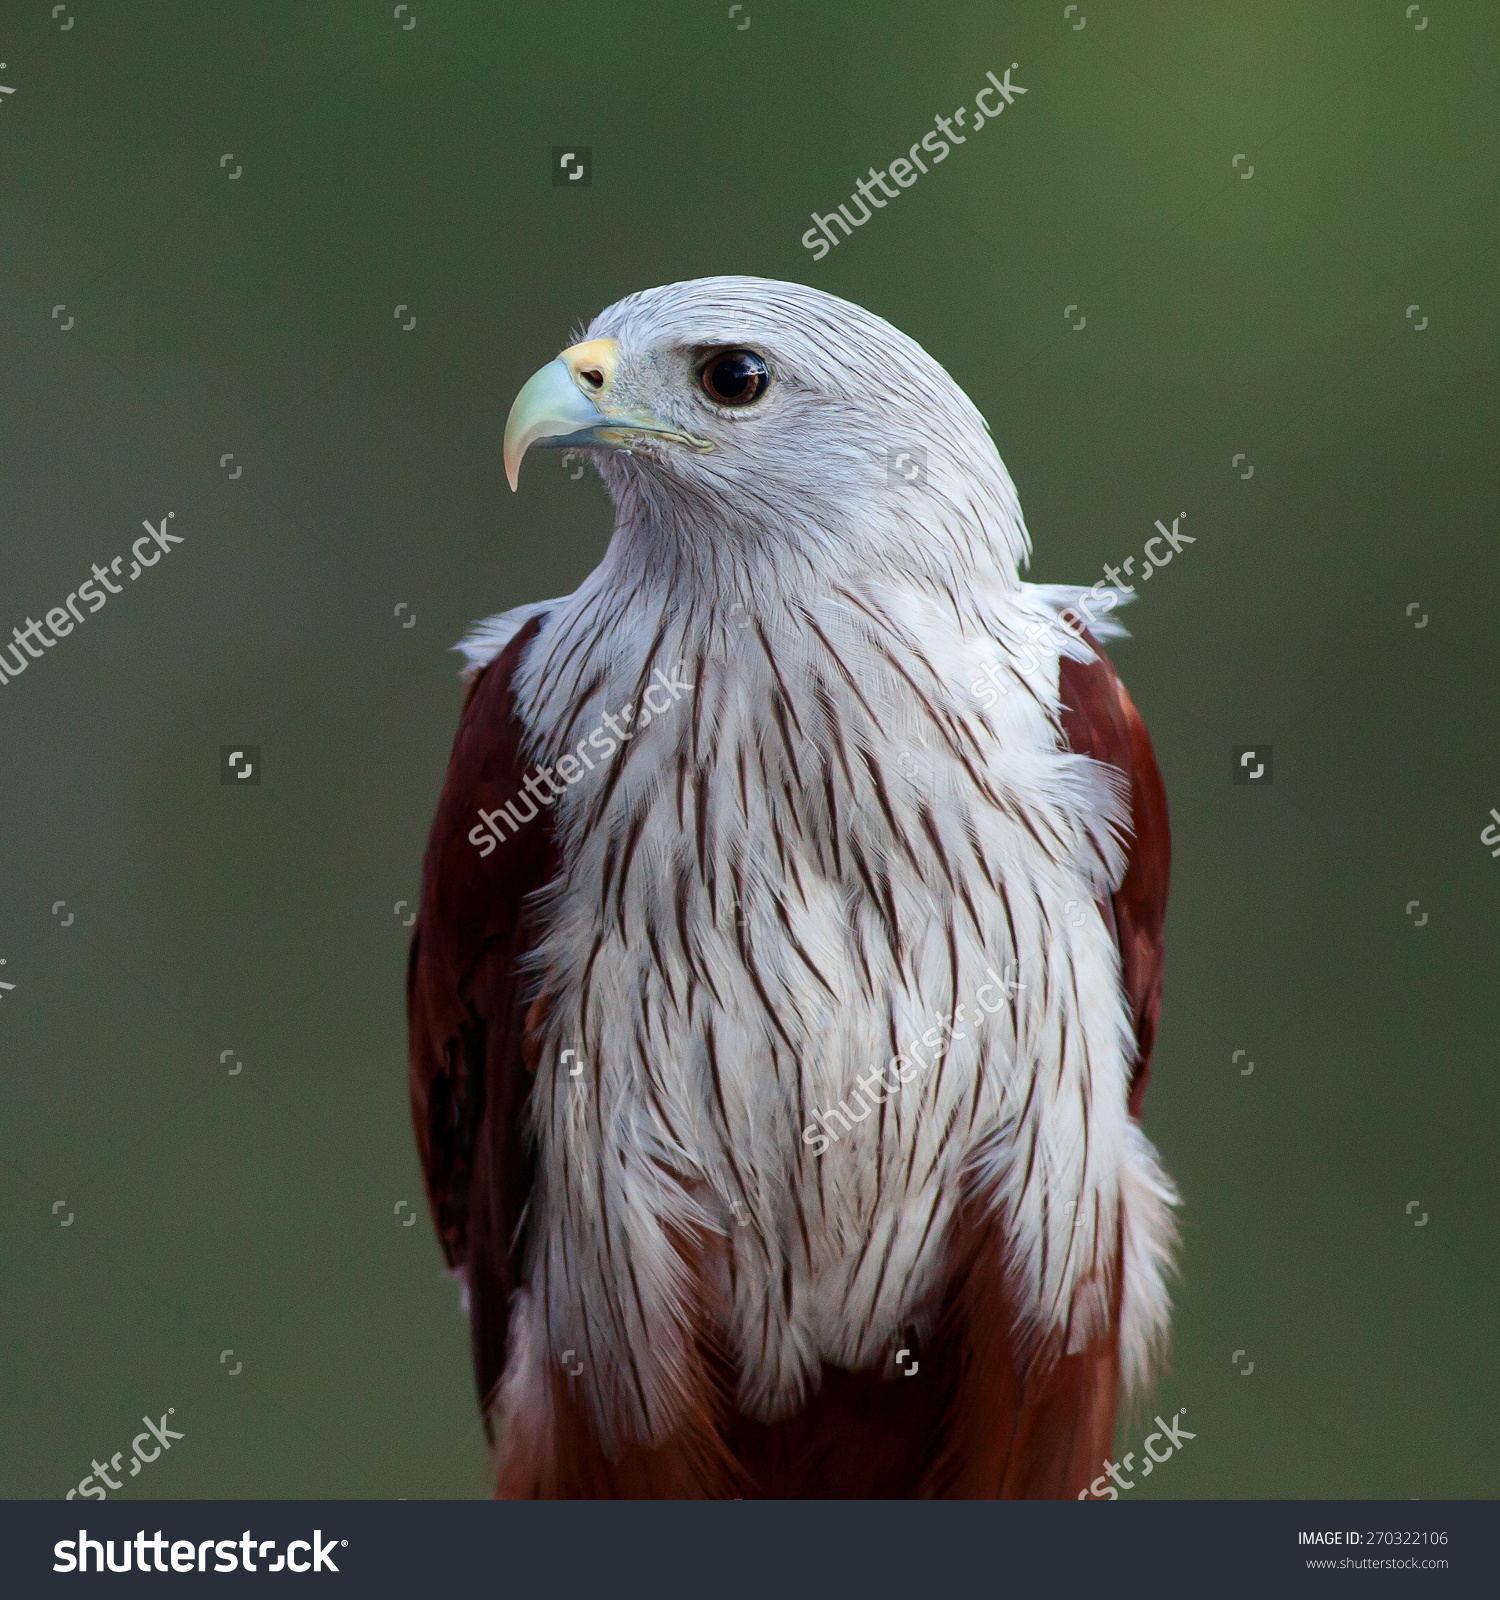 Red-backed Sea-eagle clipart #3, Download drawings